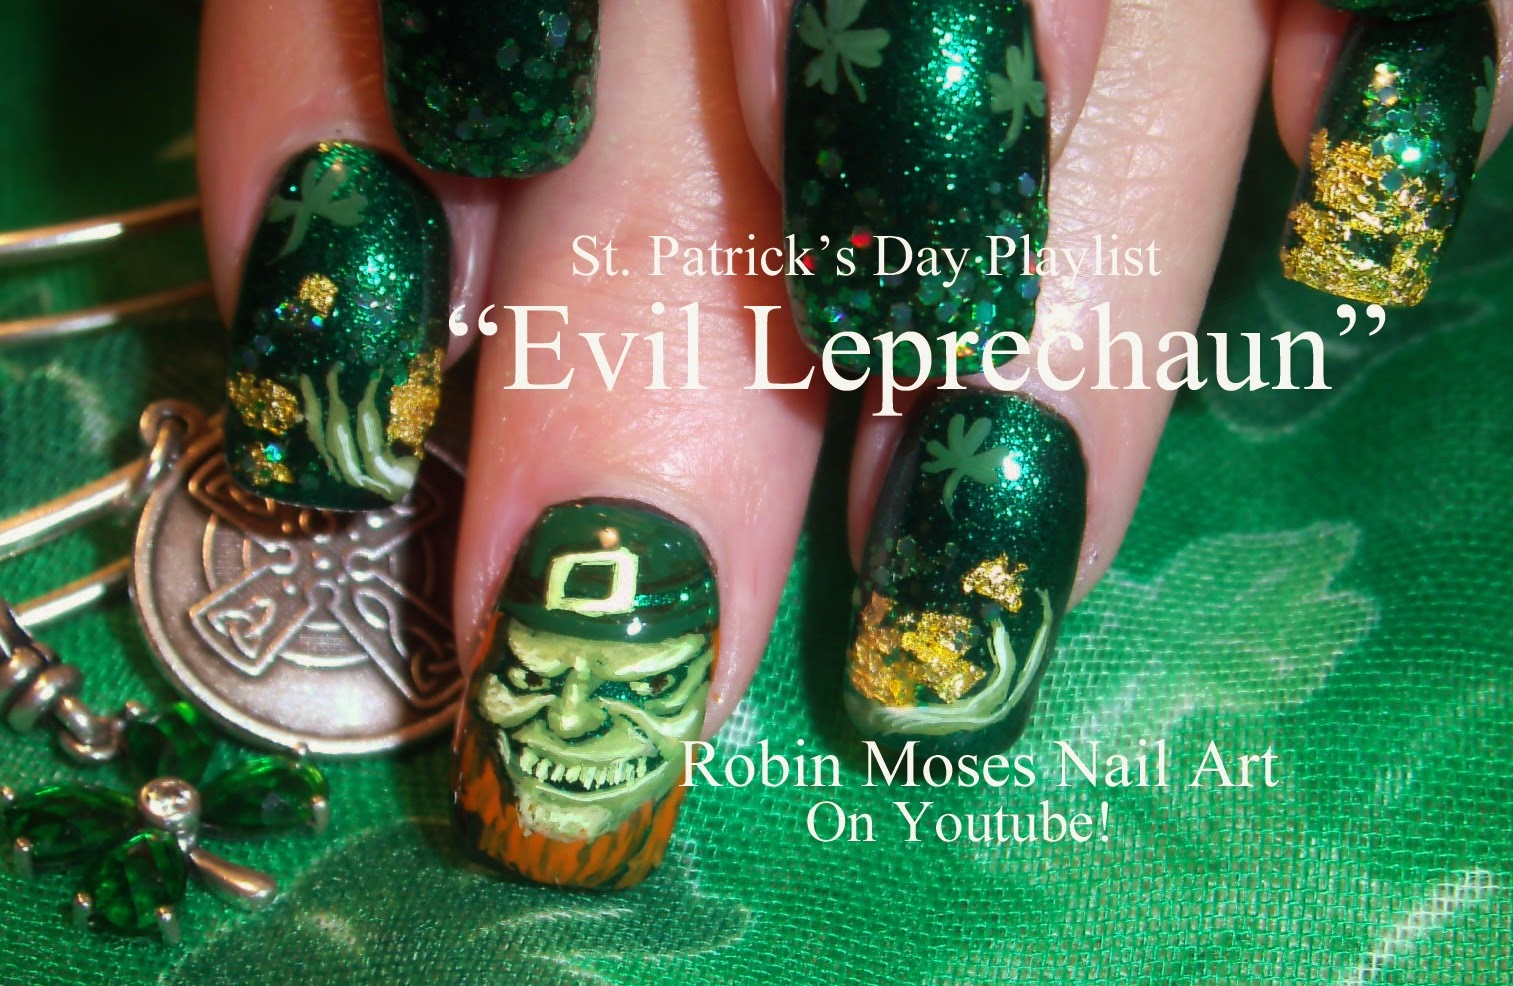 Robin moses nail art evil leprechaun leprechaun nails nail evil leprechaun leprechaun nails nail art st patricks day nail art leprechaun nail art shamrock nail art clover nail art st paddys day prinsesfo Gallery